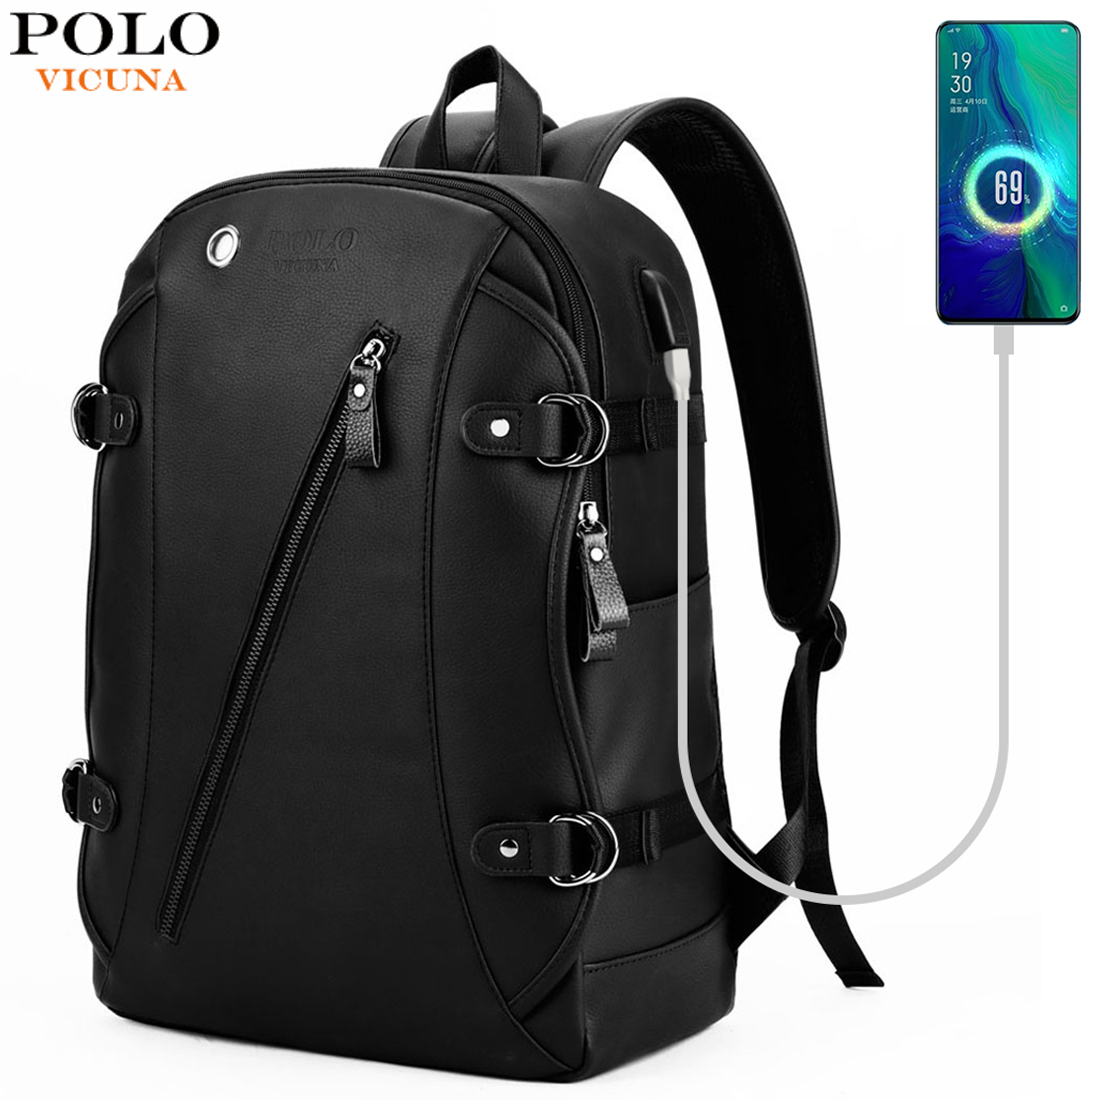 VICUNA POLO Brand Soft Leather USB Charging Business Men Backpack With Headphone Hole Casual Travel Man